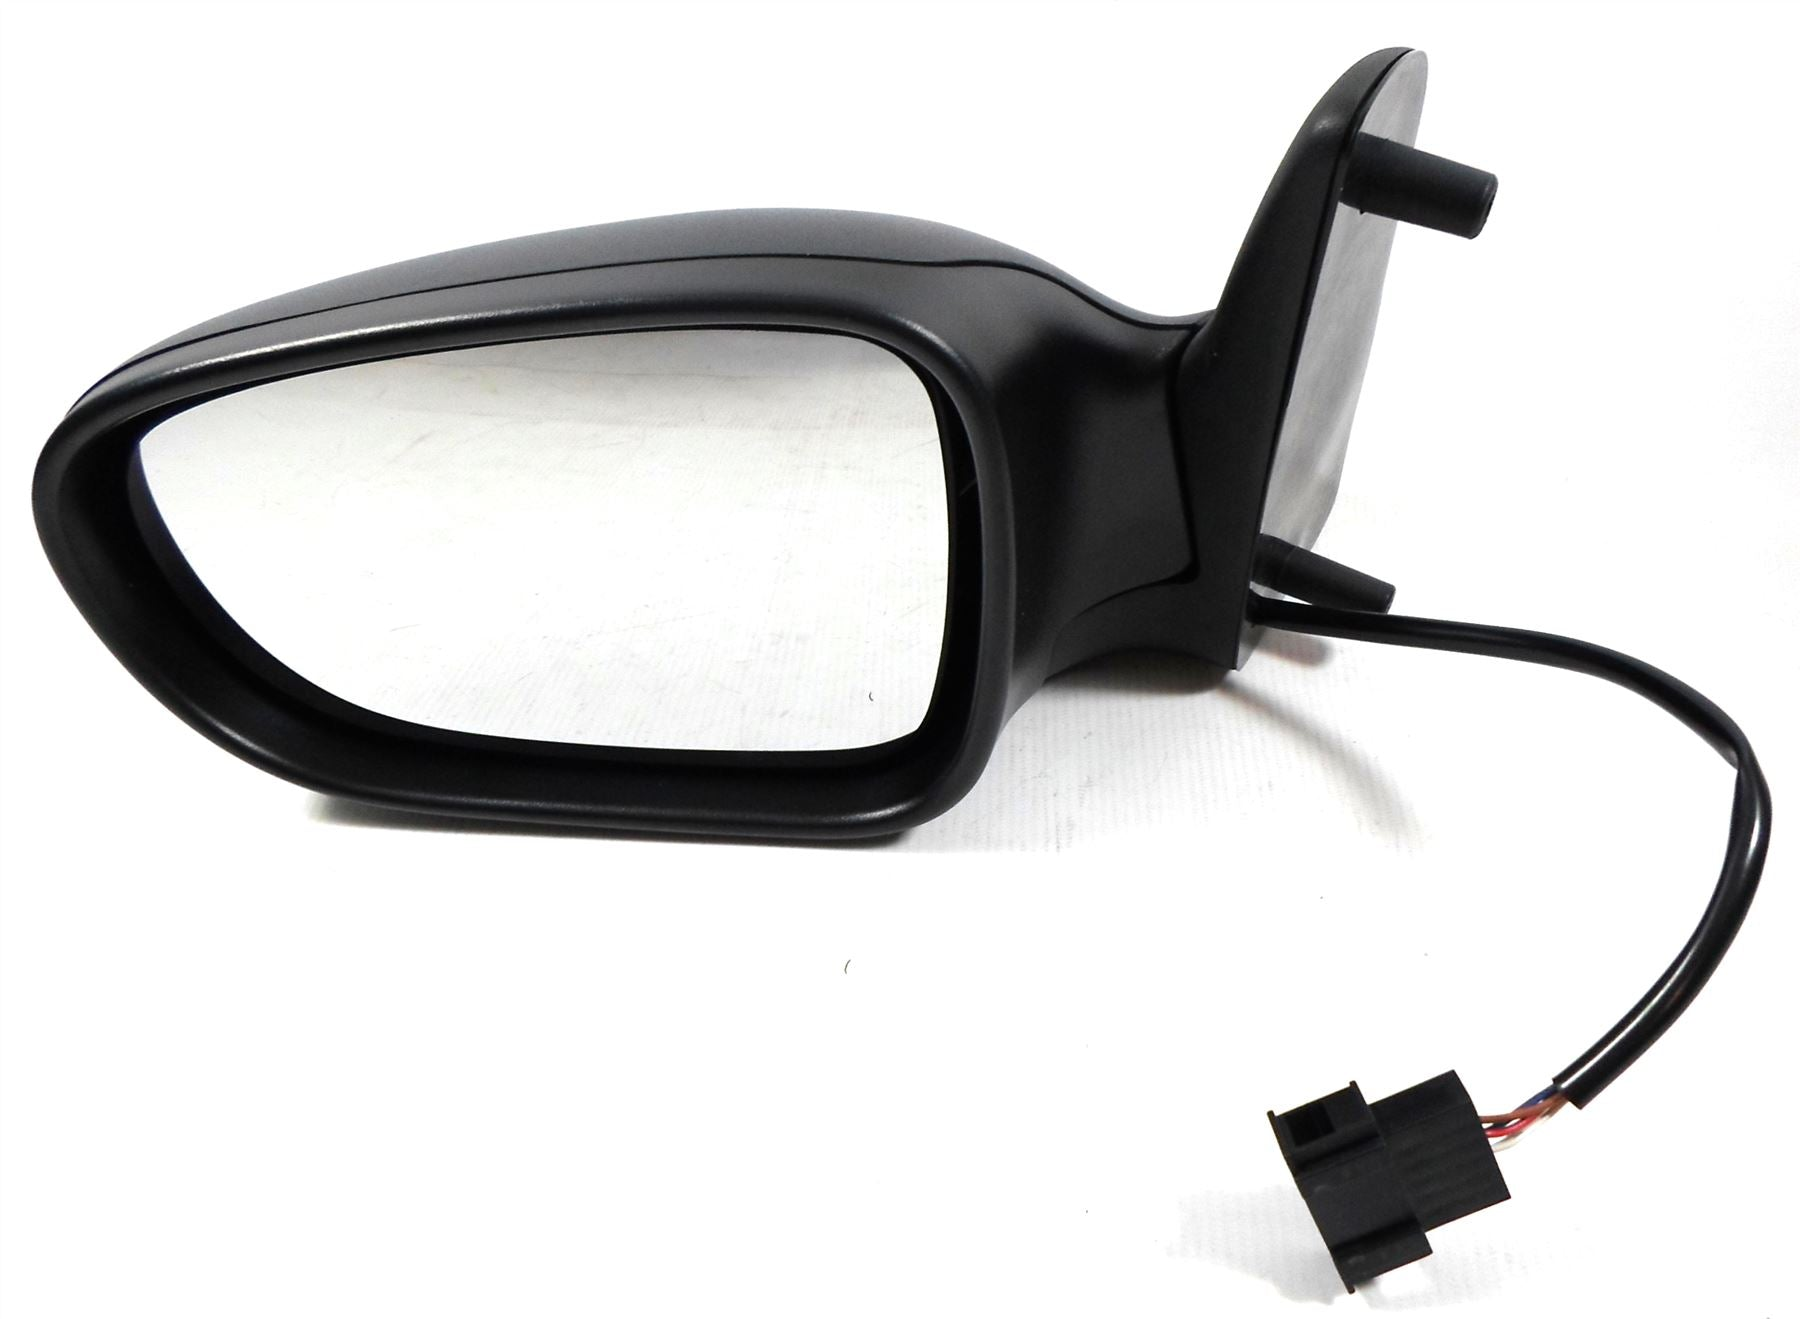 MCW Metrocab 3/2000-12-2005 Electric Wing Mirror Heated Black Passenger Side N/S